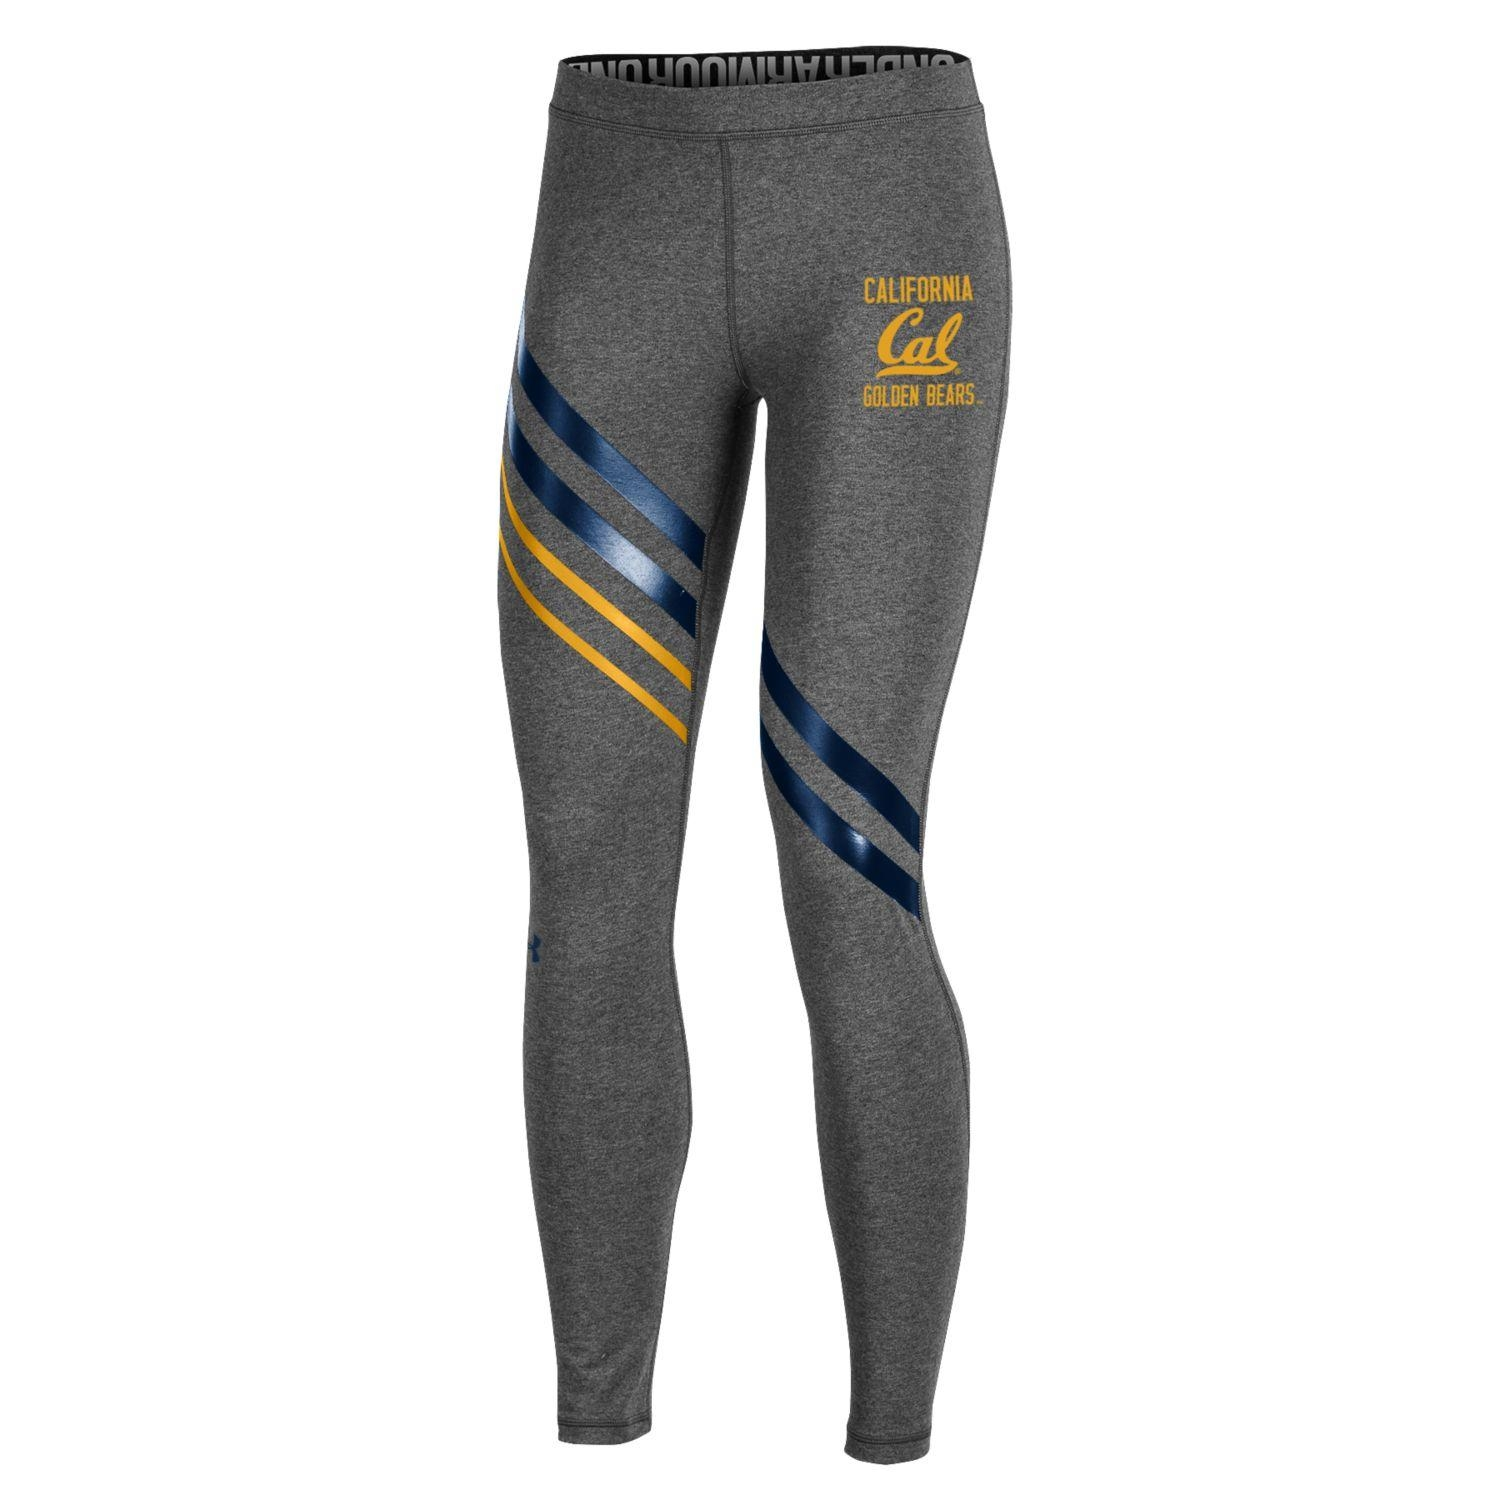 University of California Berkeley Under Armour Favorites Cotton Legging (NFL version)